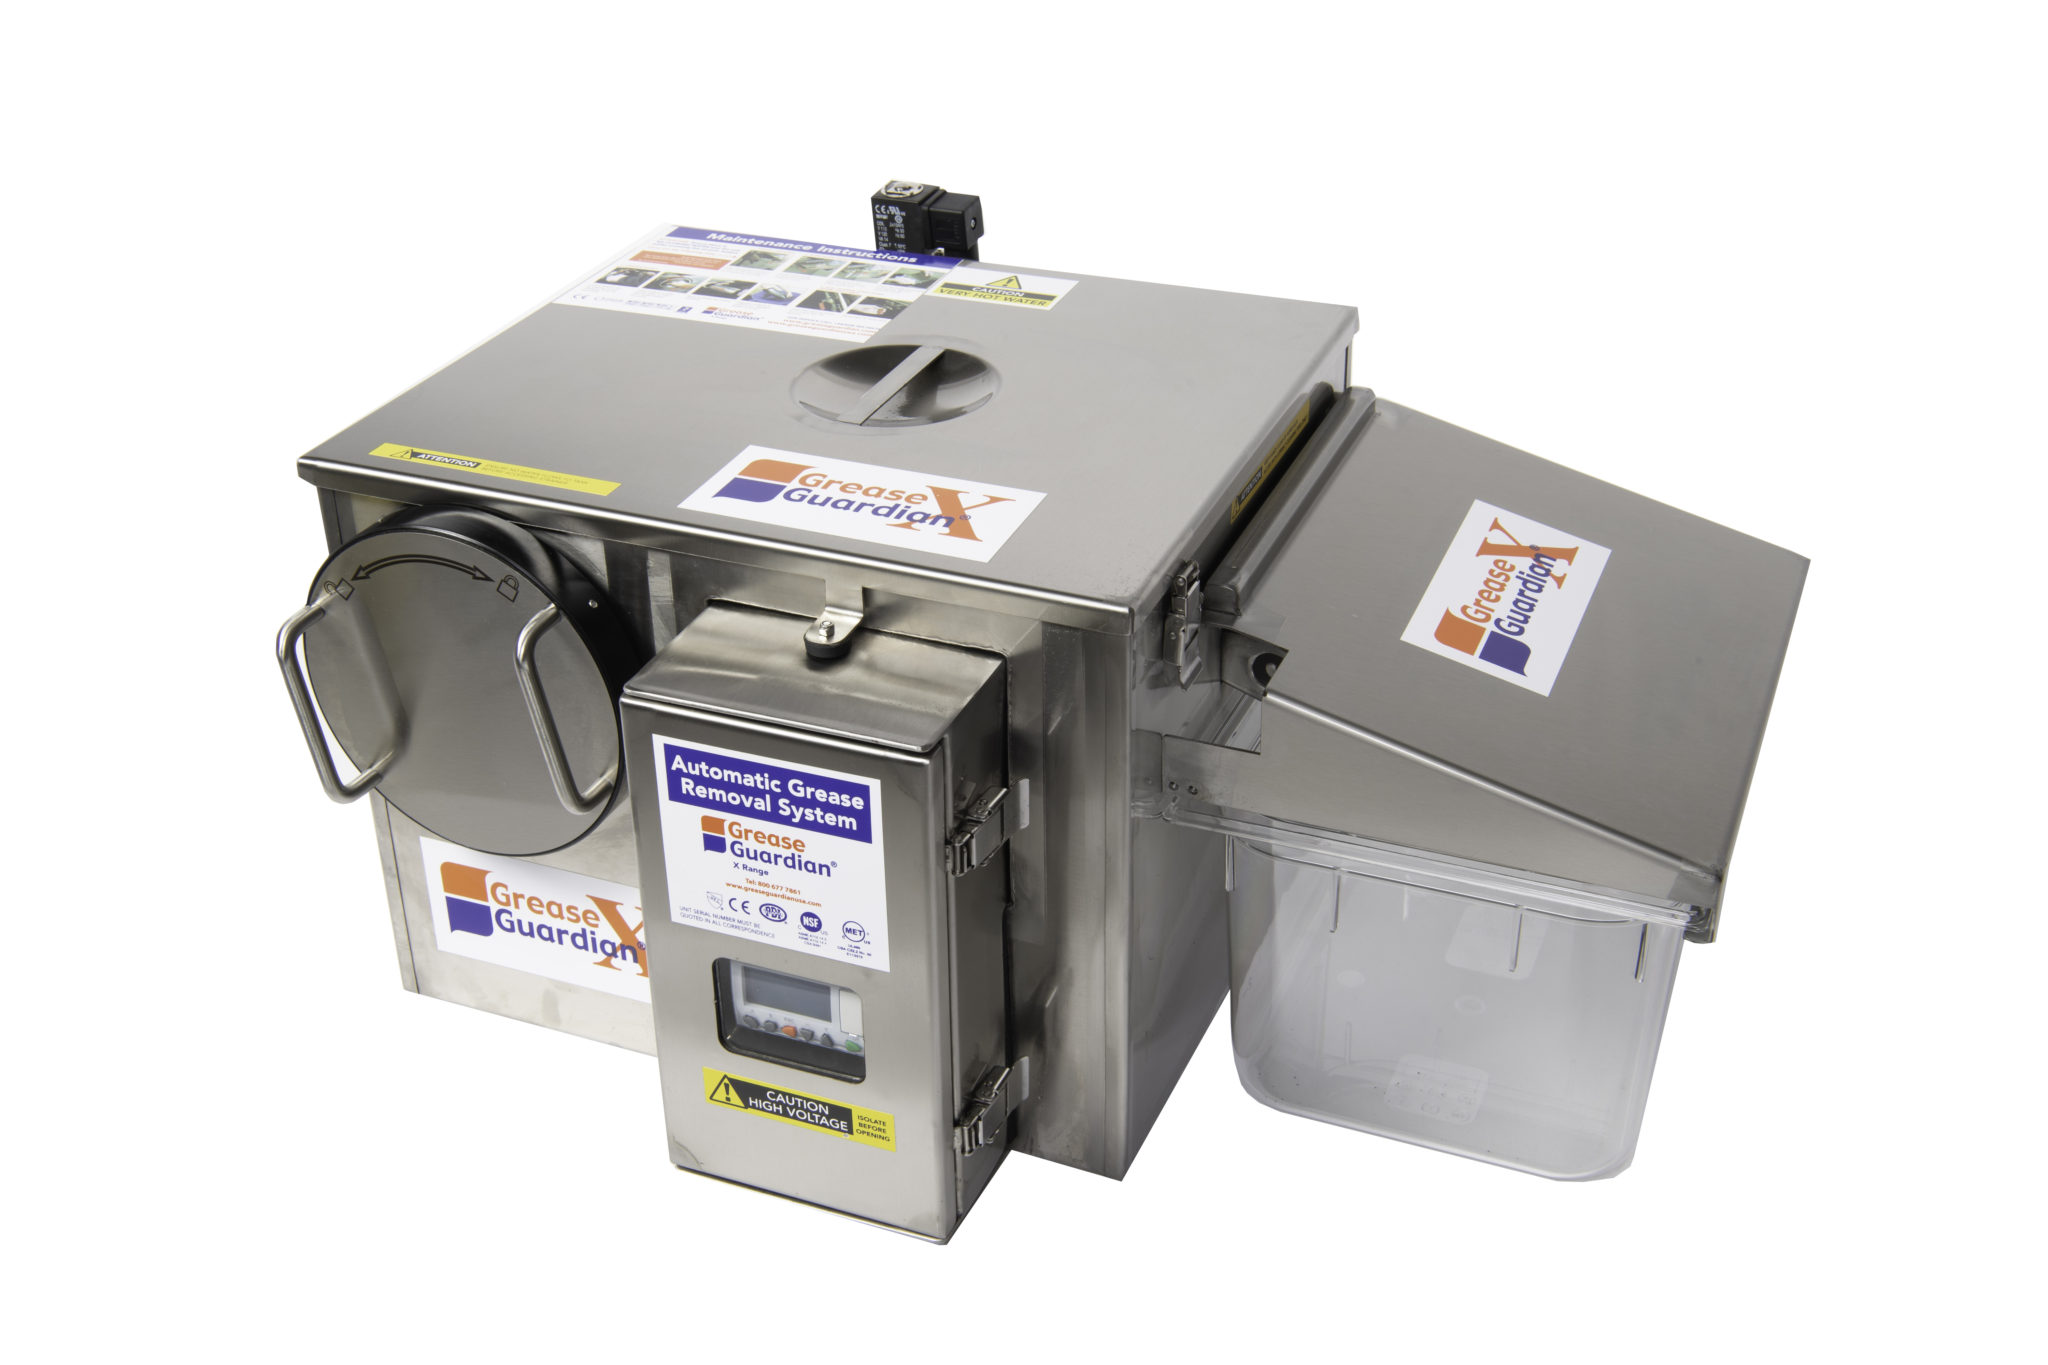 Grease Guardian automatic grease removal unit